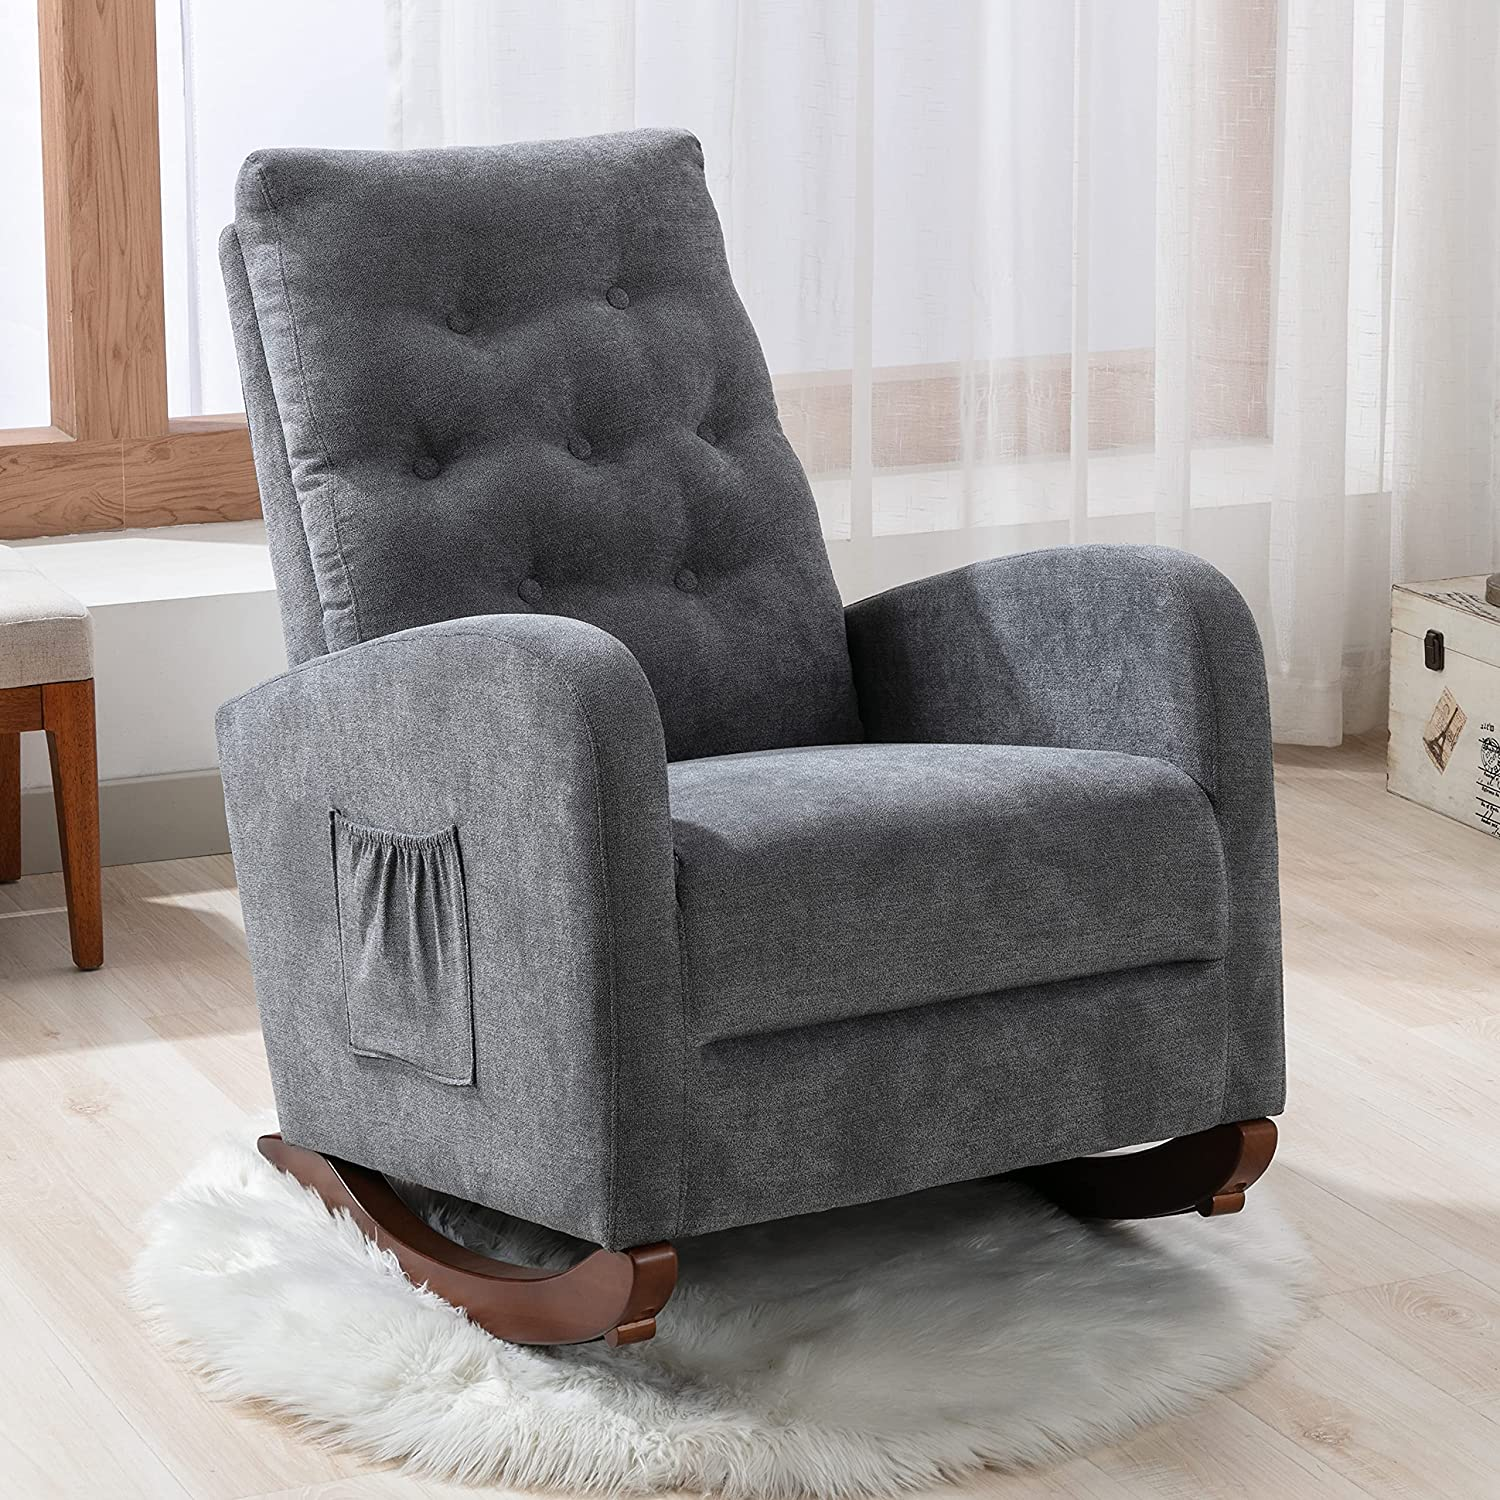 Sale Special Price Rocking Accent Outstanding Chair Tufted Upholstered Cotton Luxury Lounge Ch